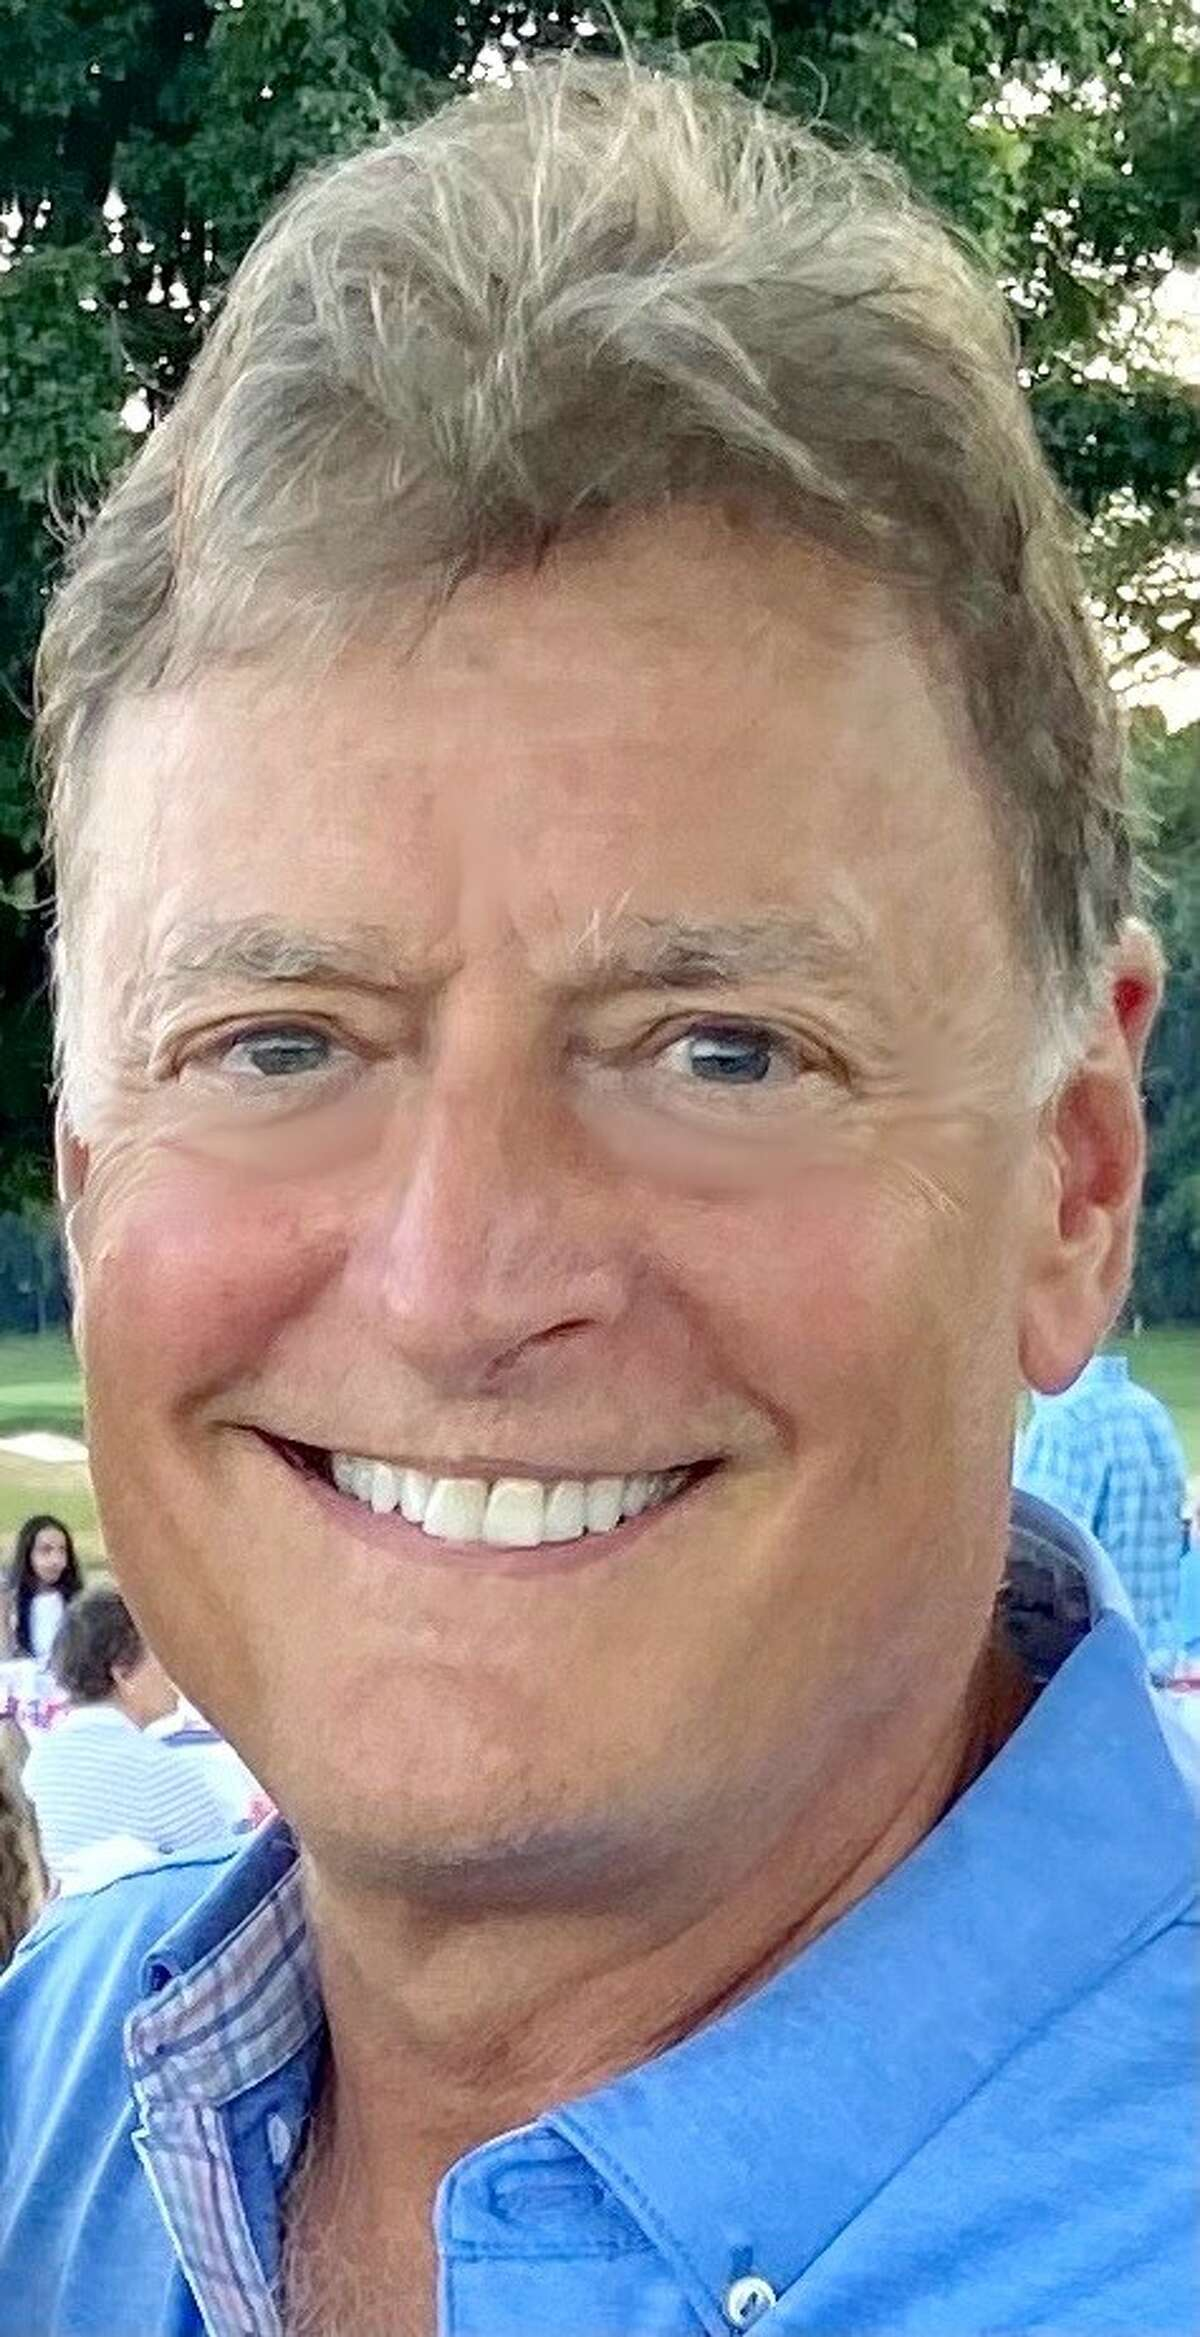 Republican candidate for Colonie town supervisor, Peter Crummey.